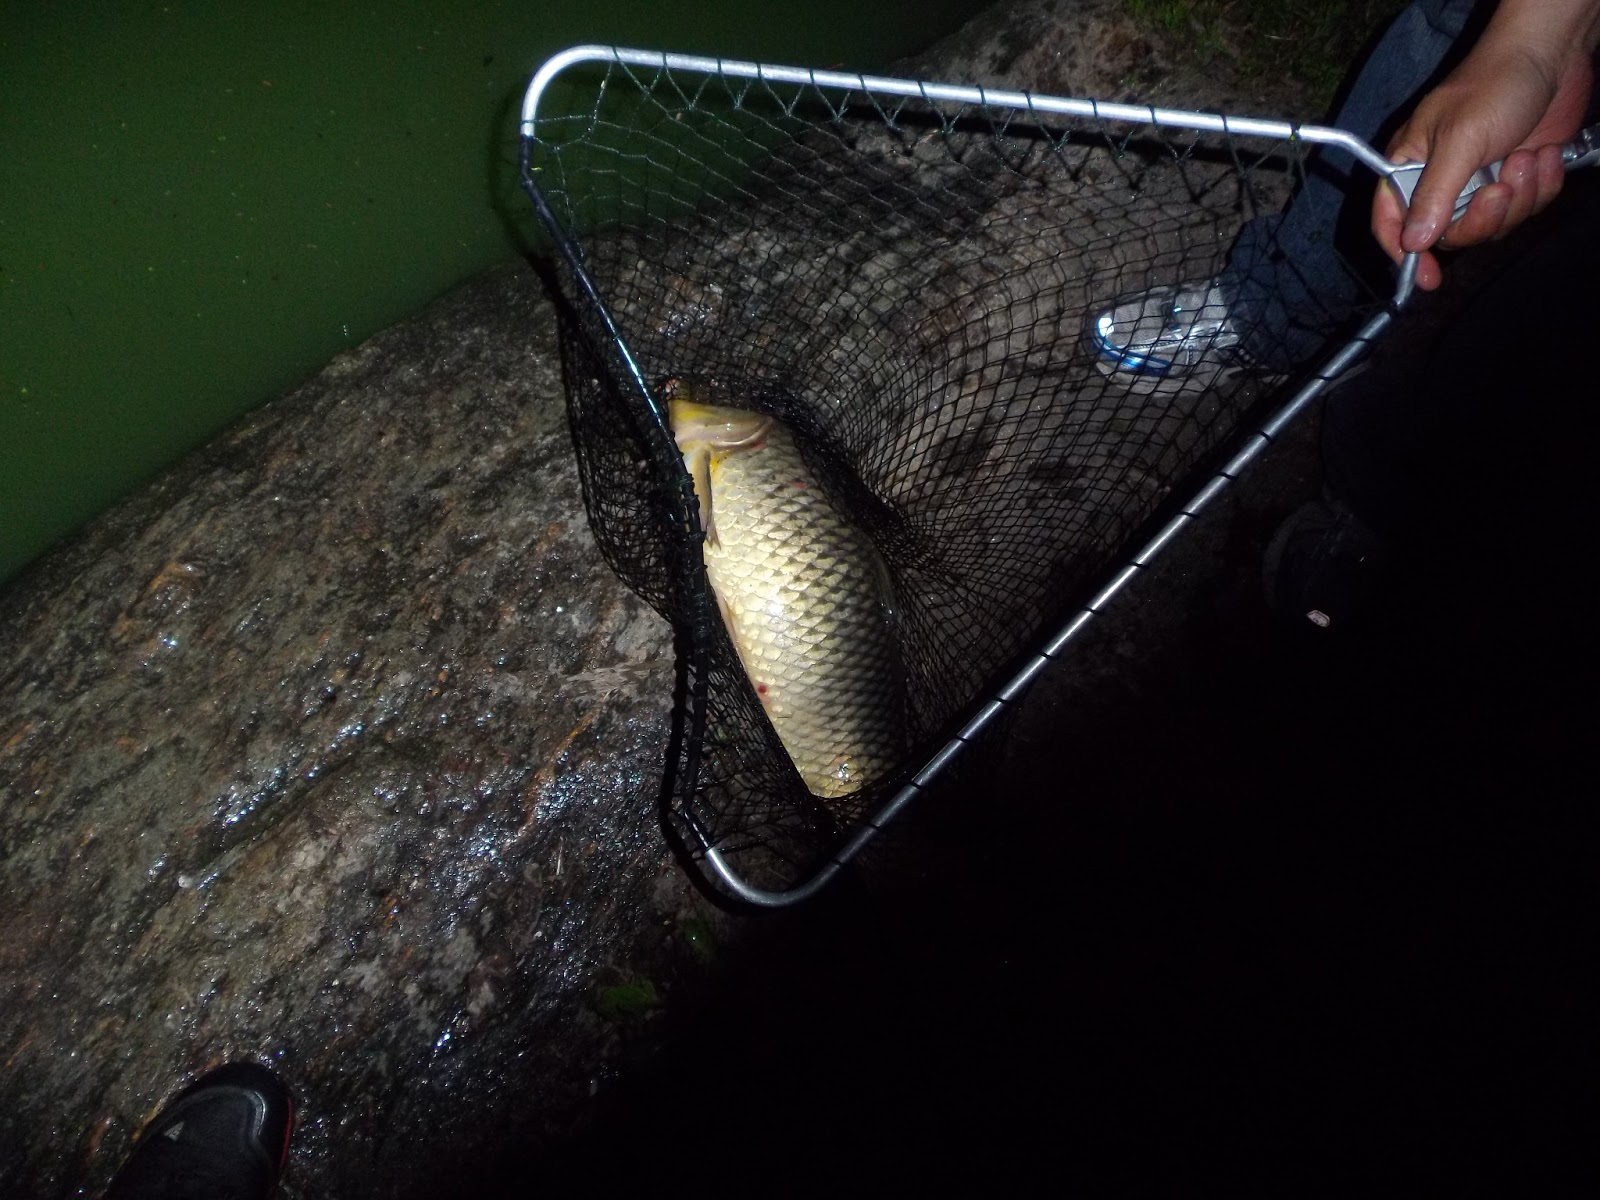 Dry fly fishing for carp the great lakes of nyc for Fly fishing carp